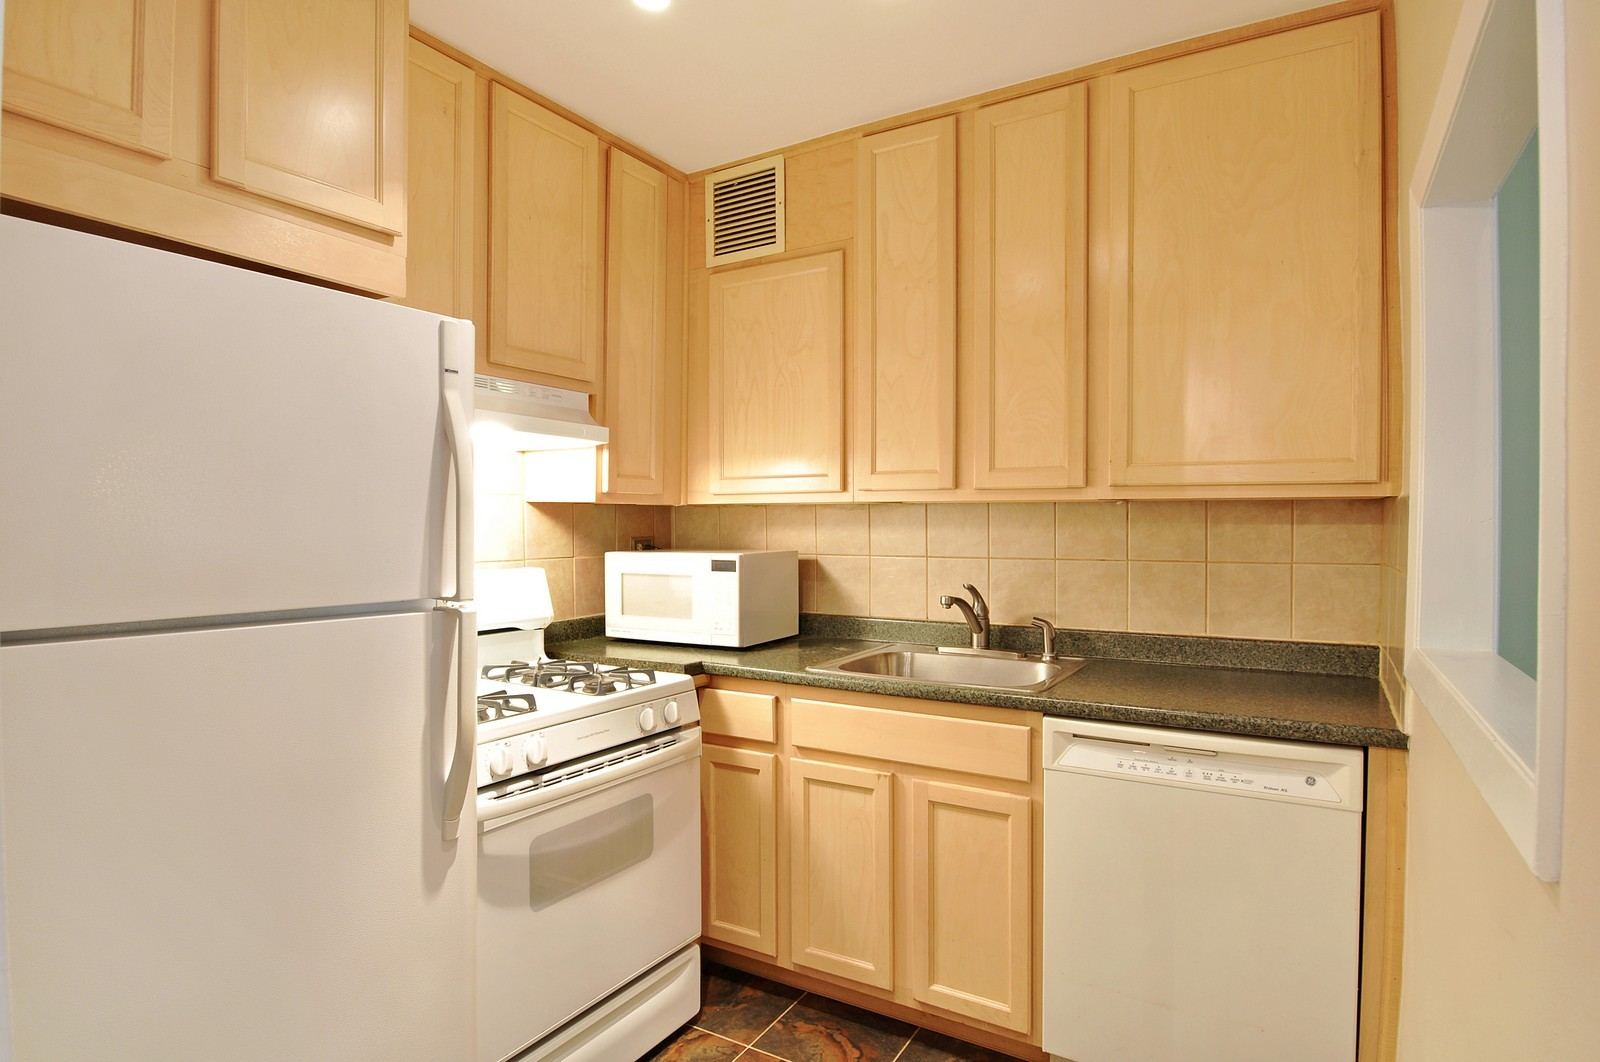 Real Estate Photography - 1805 215th St, Bayside, NY, 11360 - Kitchen